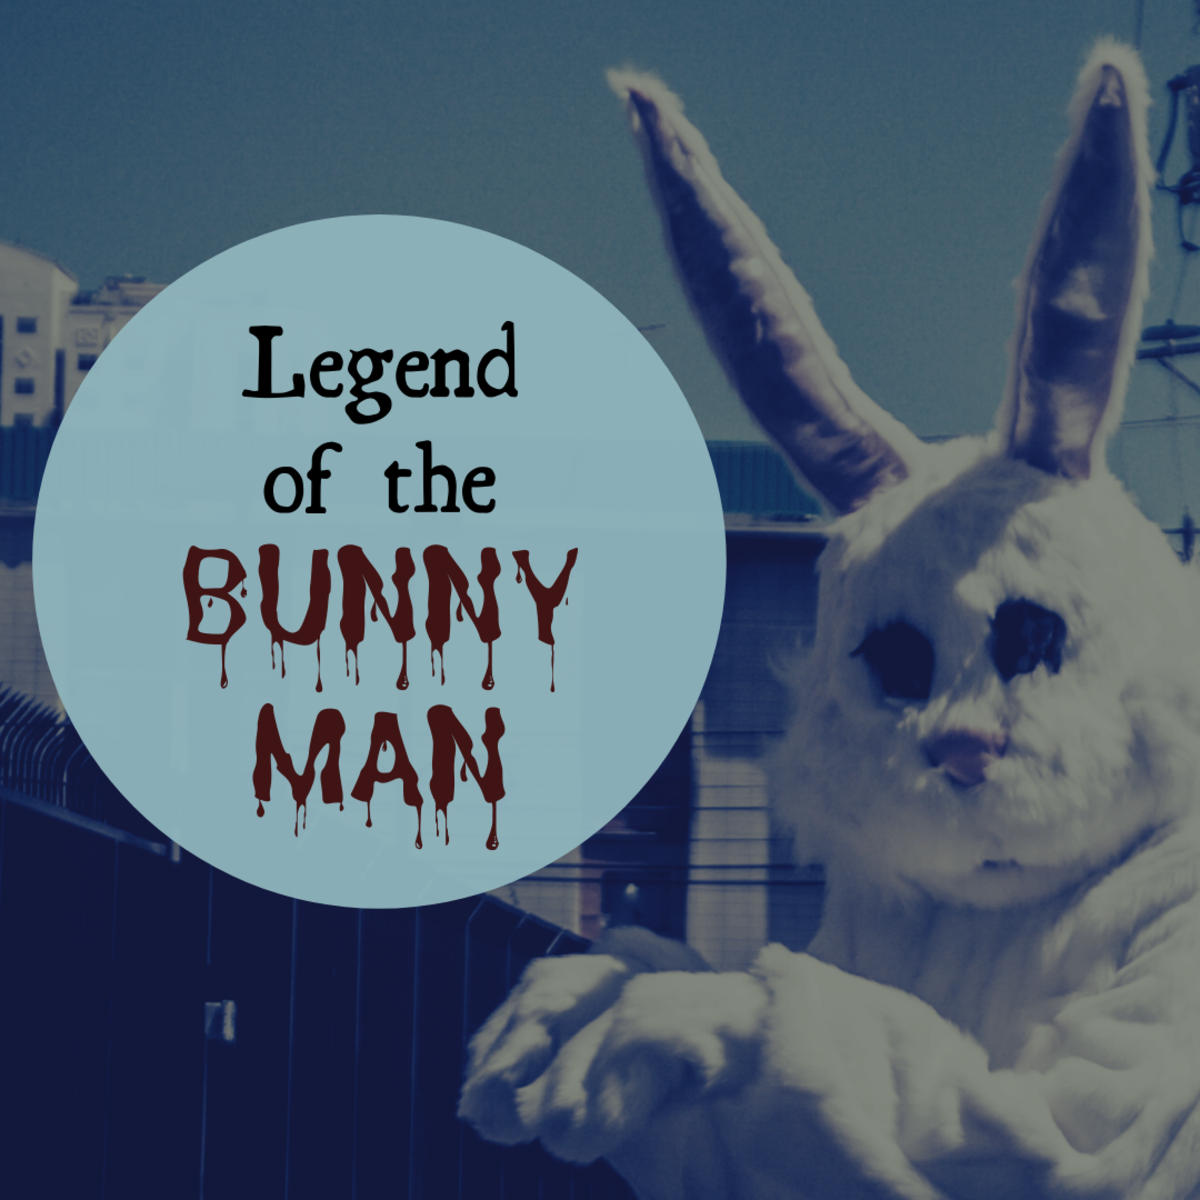 A giant, axe-wielding bunny? Discover if there's any truth to the legend of the murderous Bunny Man.